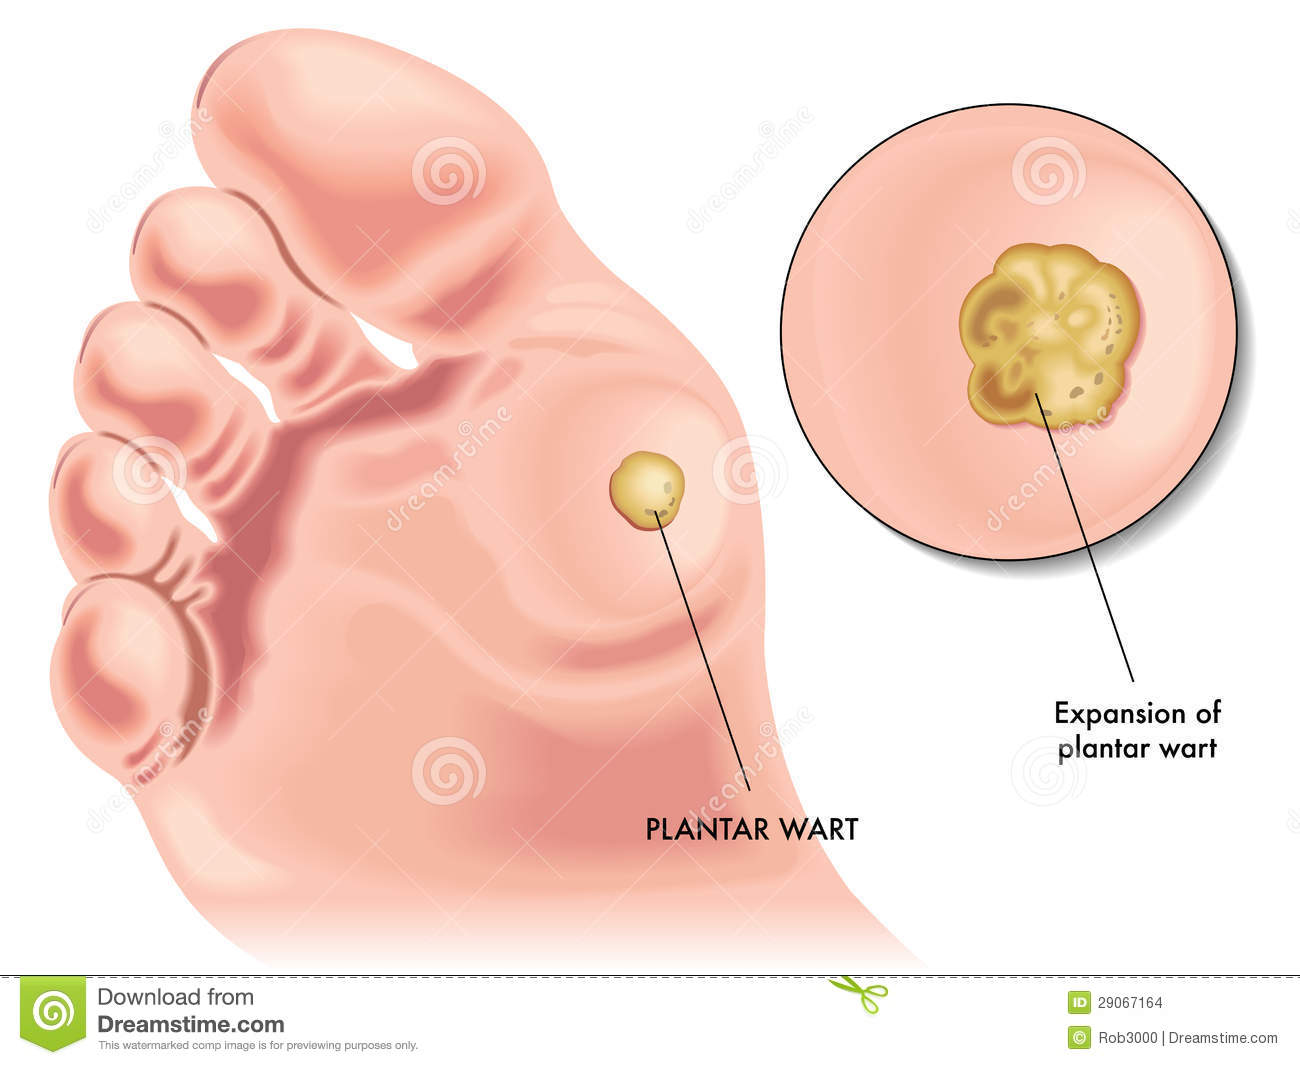 How Do You Remove Plantar Wart